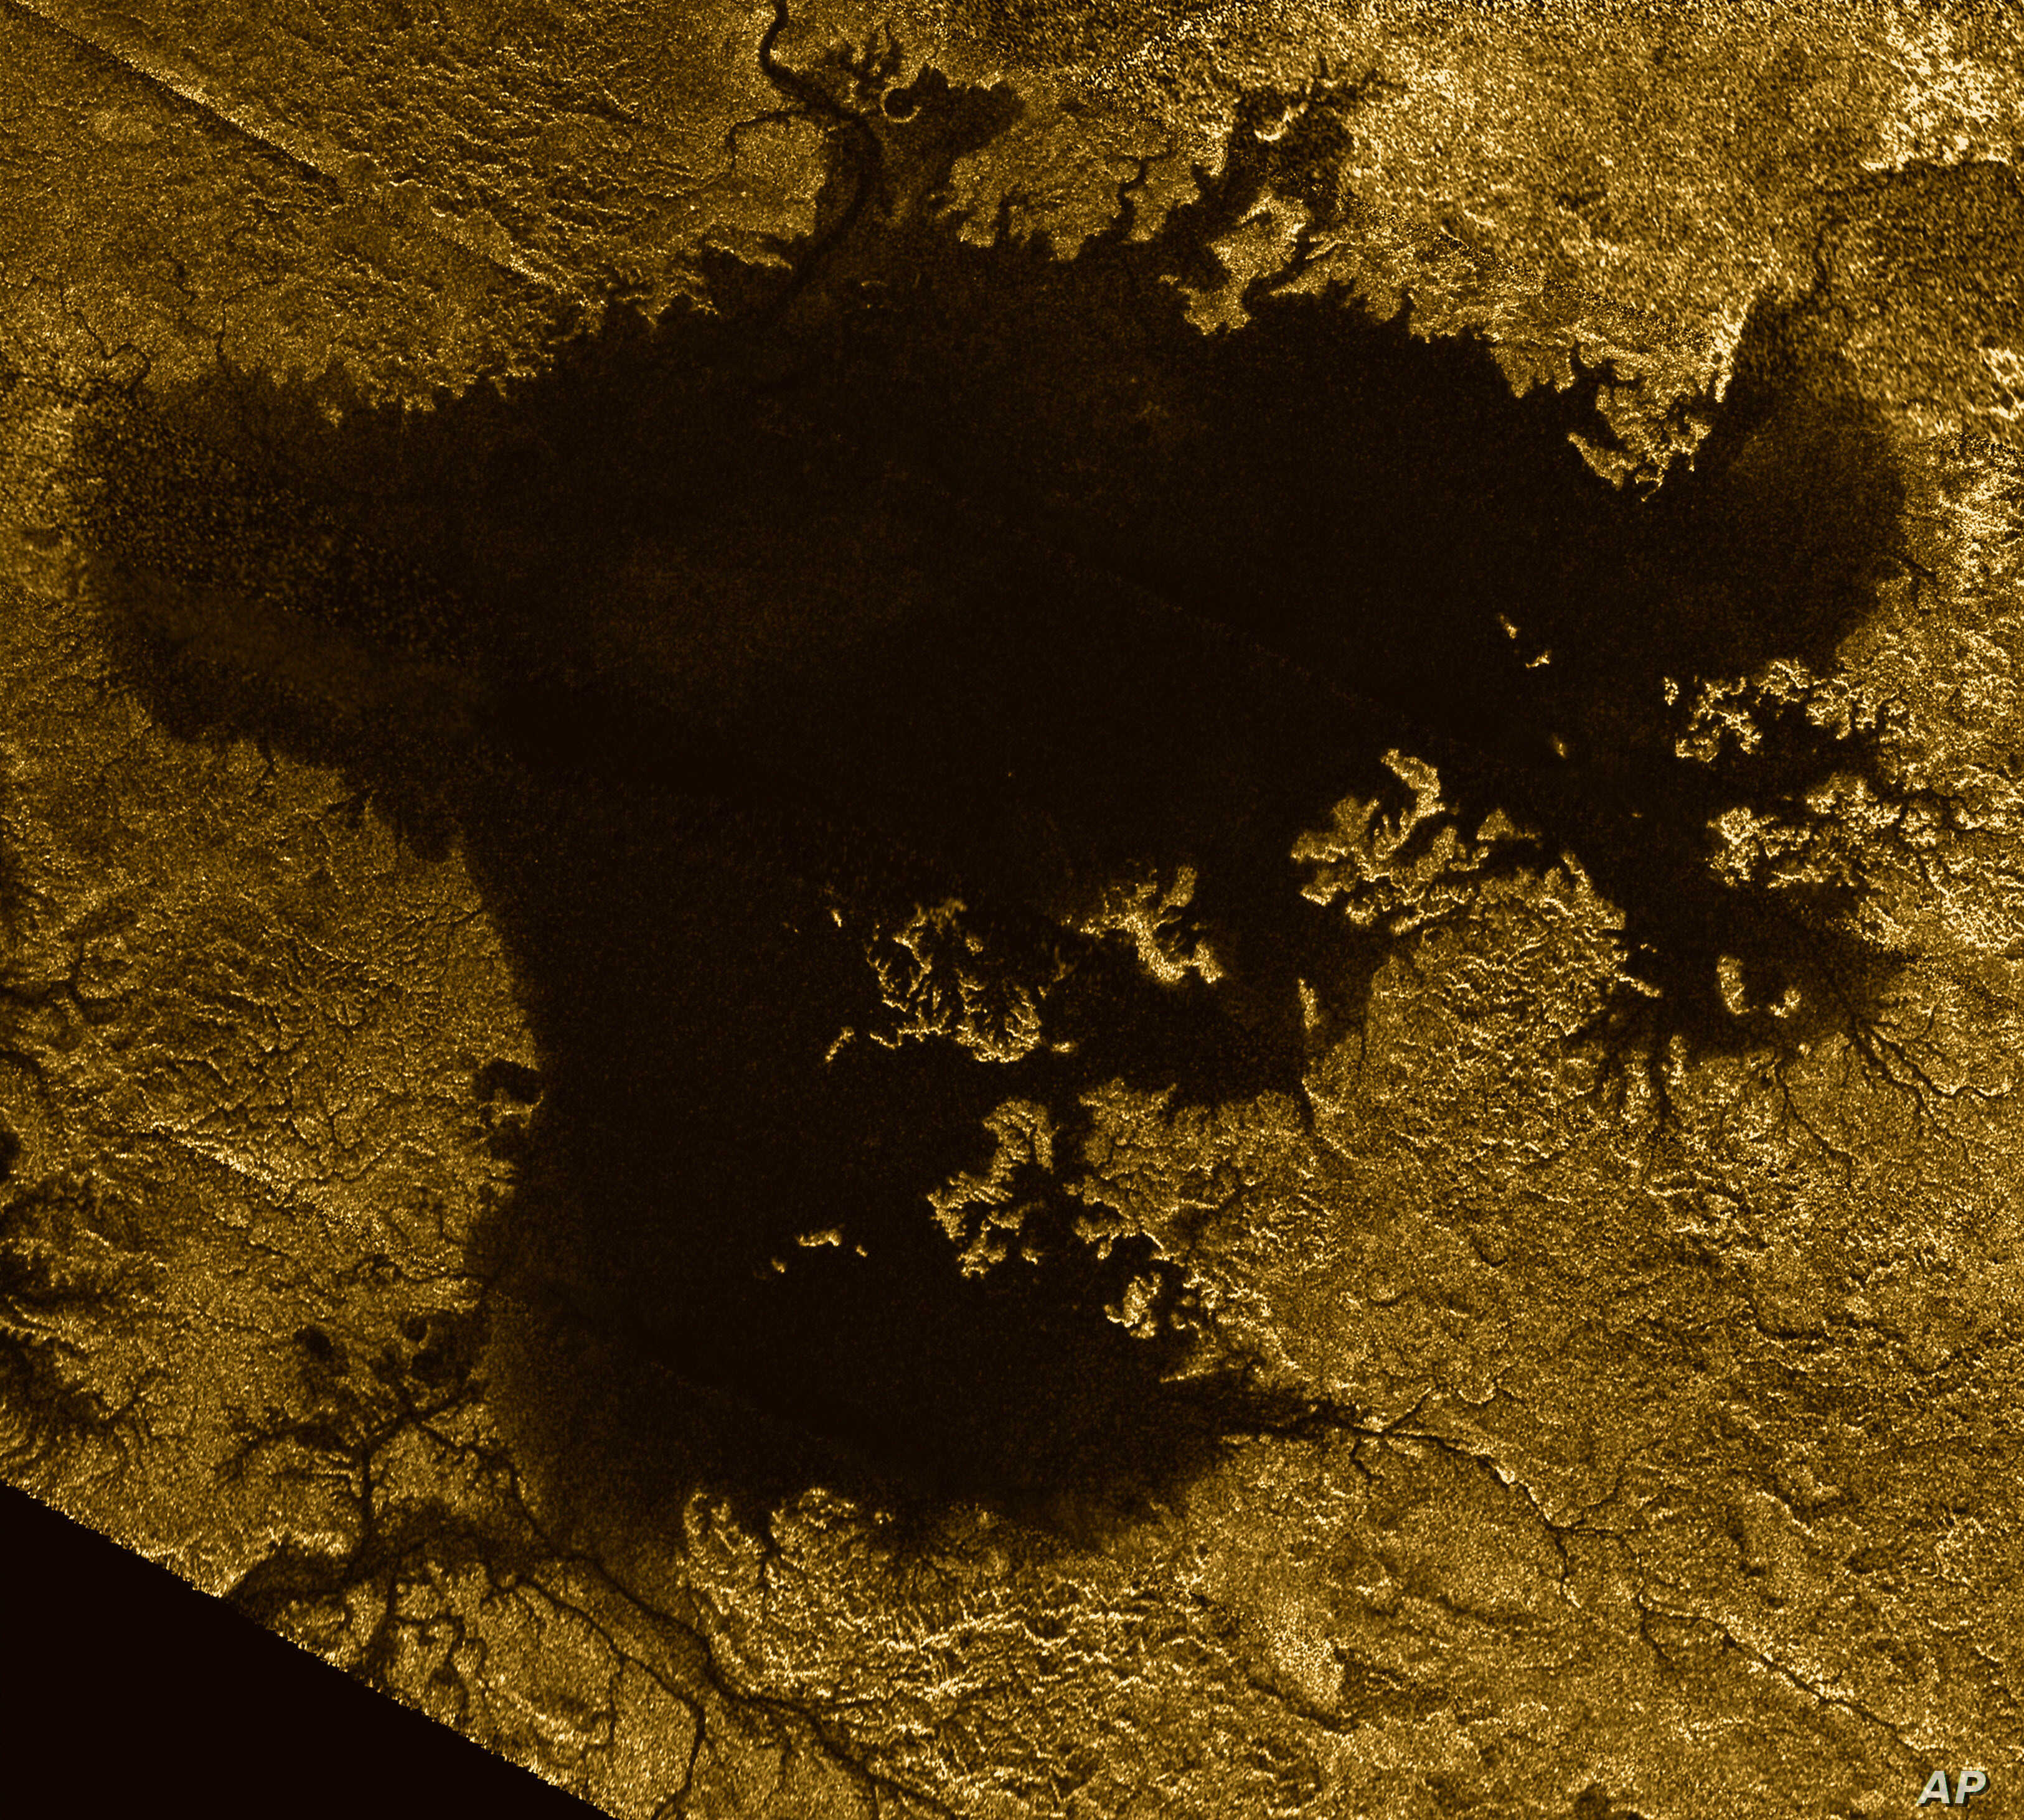 FILE - This 2007 image made available by NASA shows a hydrocarbon sea named Ligeia Mare on Saturn's moon Titan, as seen by the Cassini spacecraft.